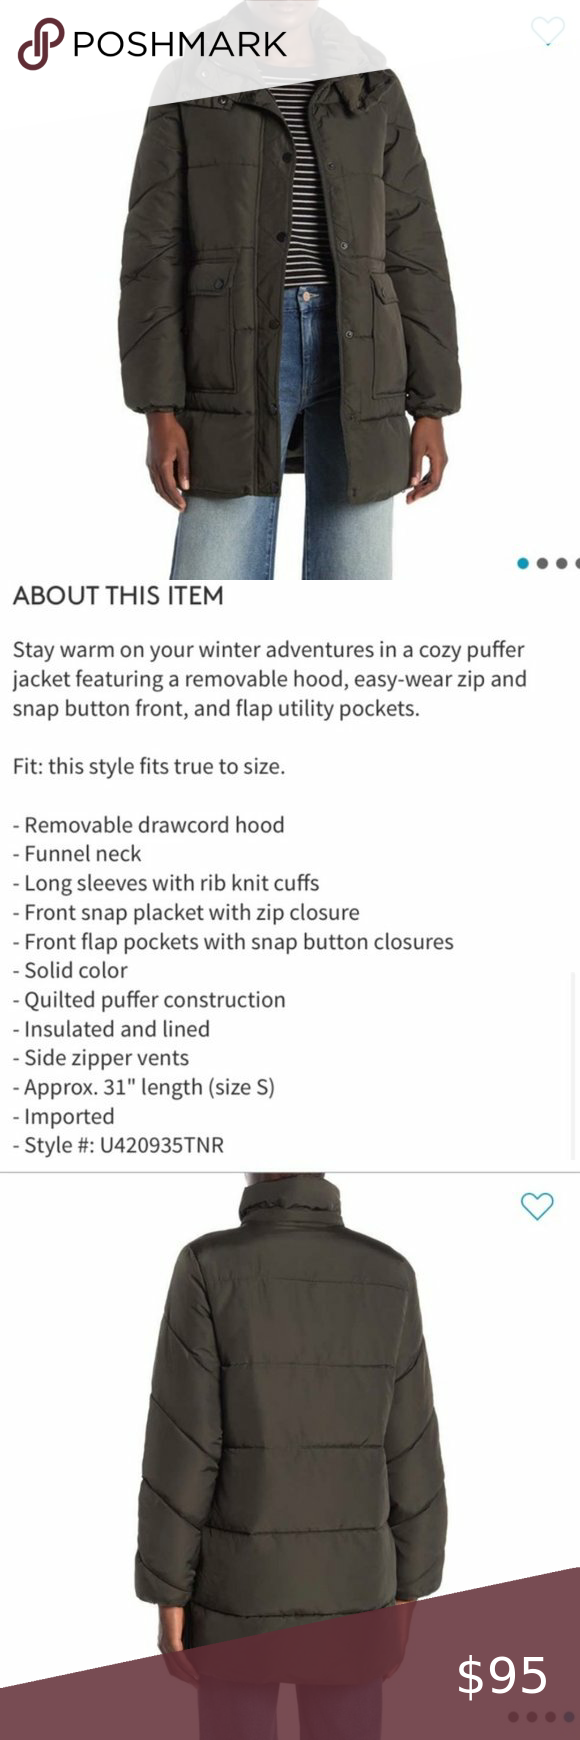 New Lucky Olive Green Puffer Jacket New With Tags Lucky Brand Puffer Jacket Size Medium Fits True To Size 100 Auth Green Puffer Jacket Jackets Puffer Jackets [ 1740 x 580 Pixel ]